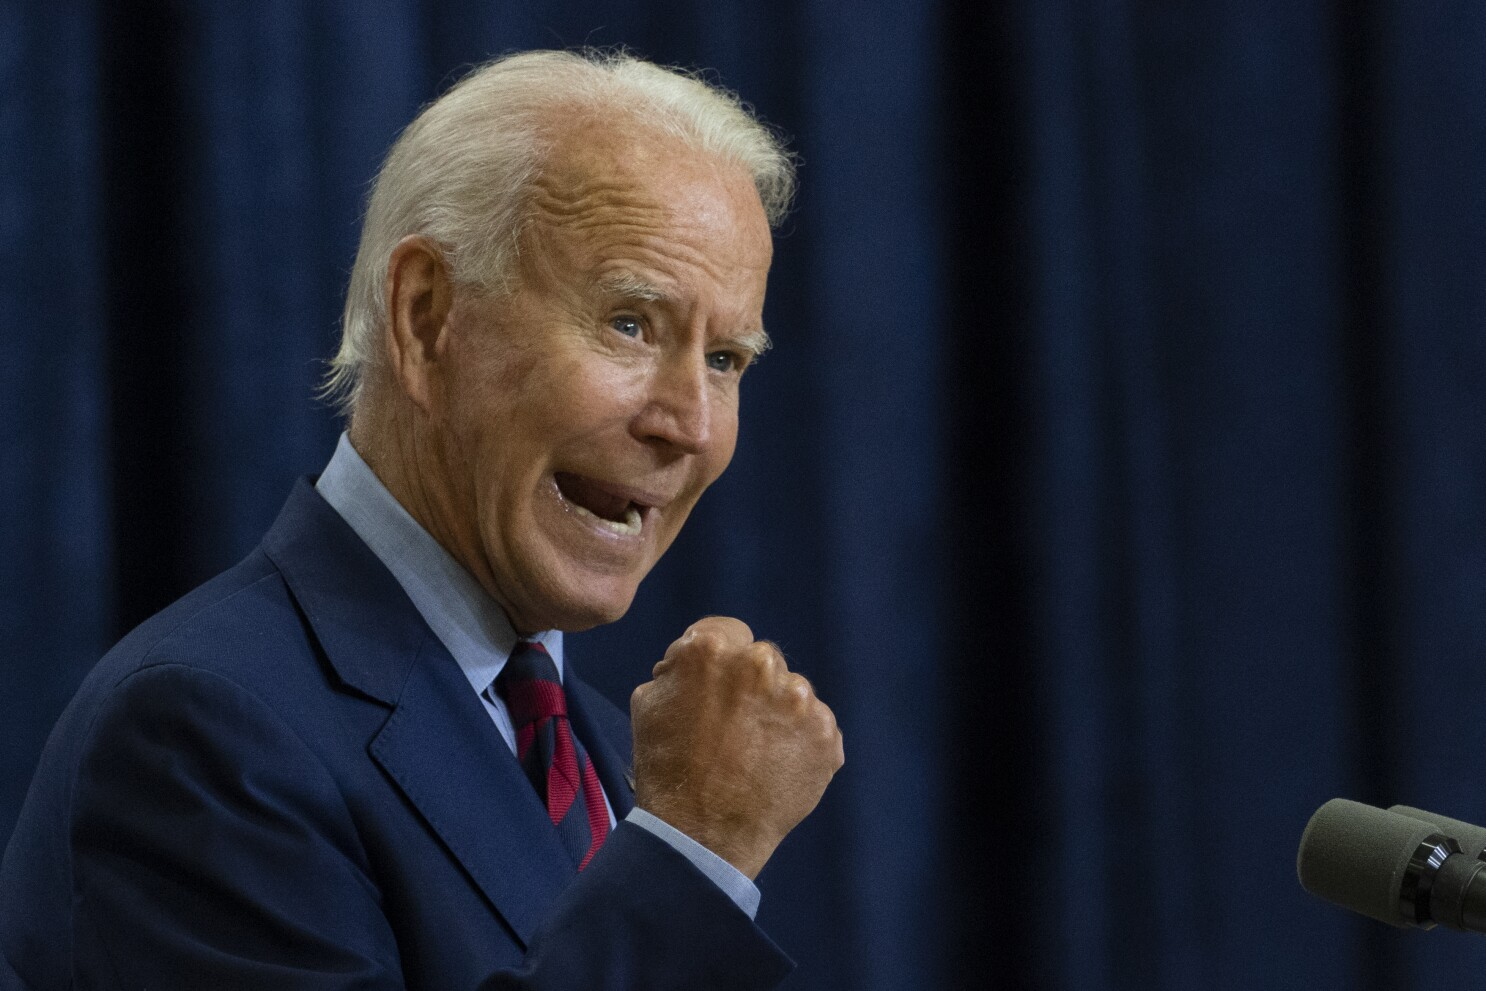 ICoinTime|Why Joe Biden to Be President Is Preferential for Bitcoin?